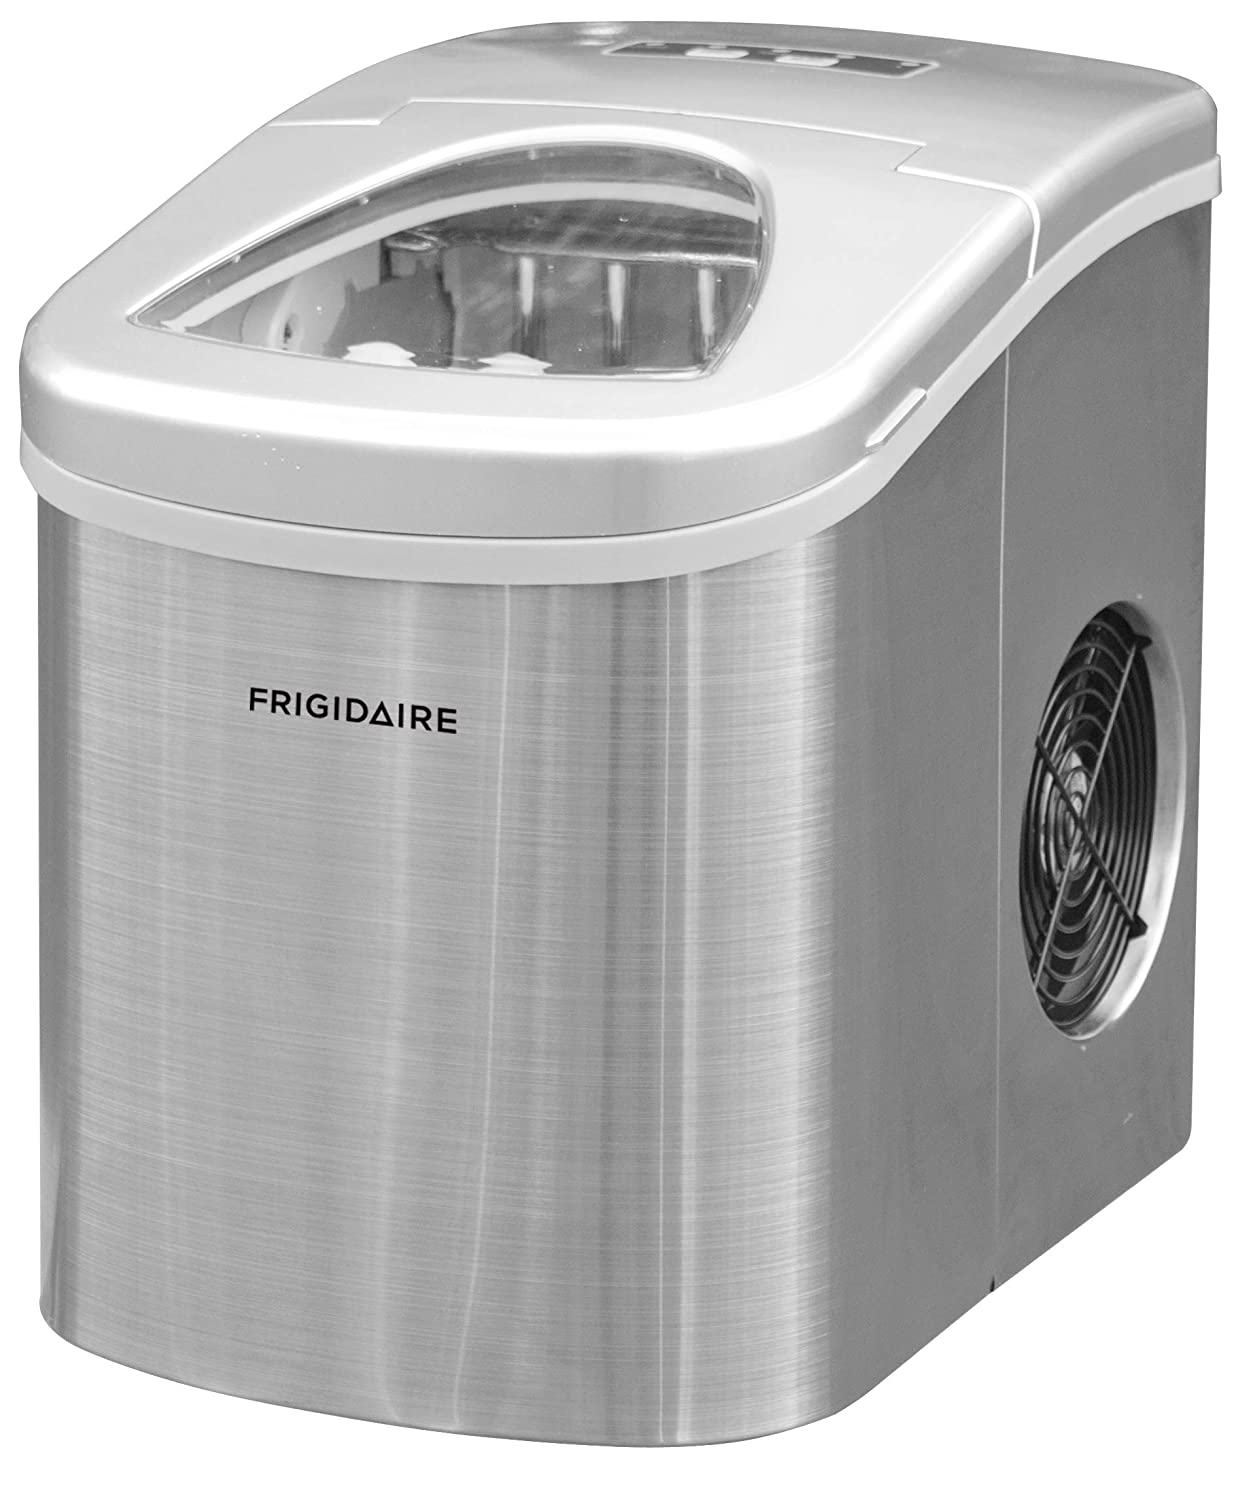 Frigidaire Counter Top Ice Maker, Produces 26 pounds Ice per Day, Stainless Steel with White See-through Lid